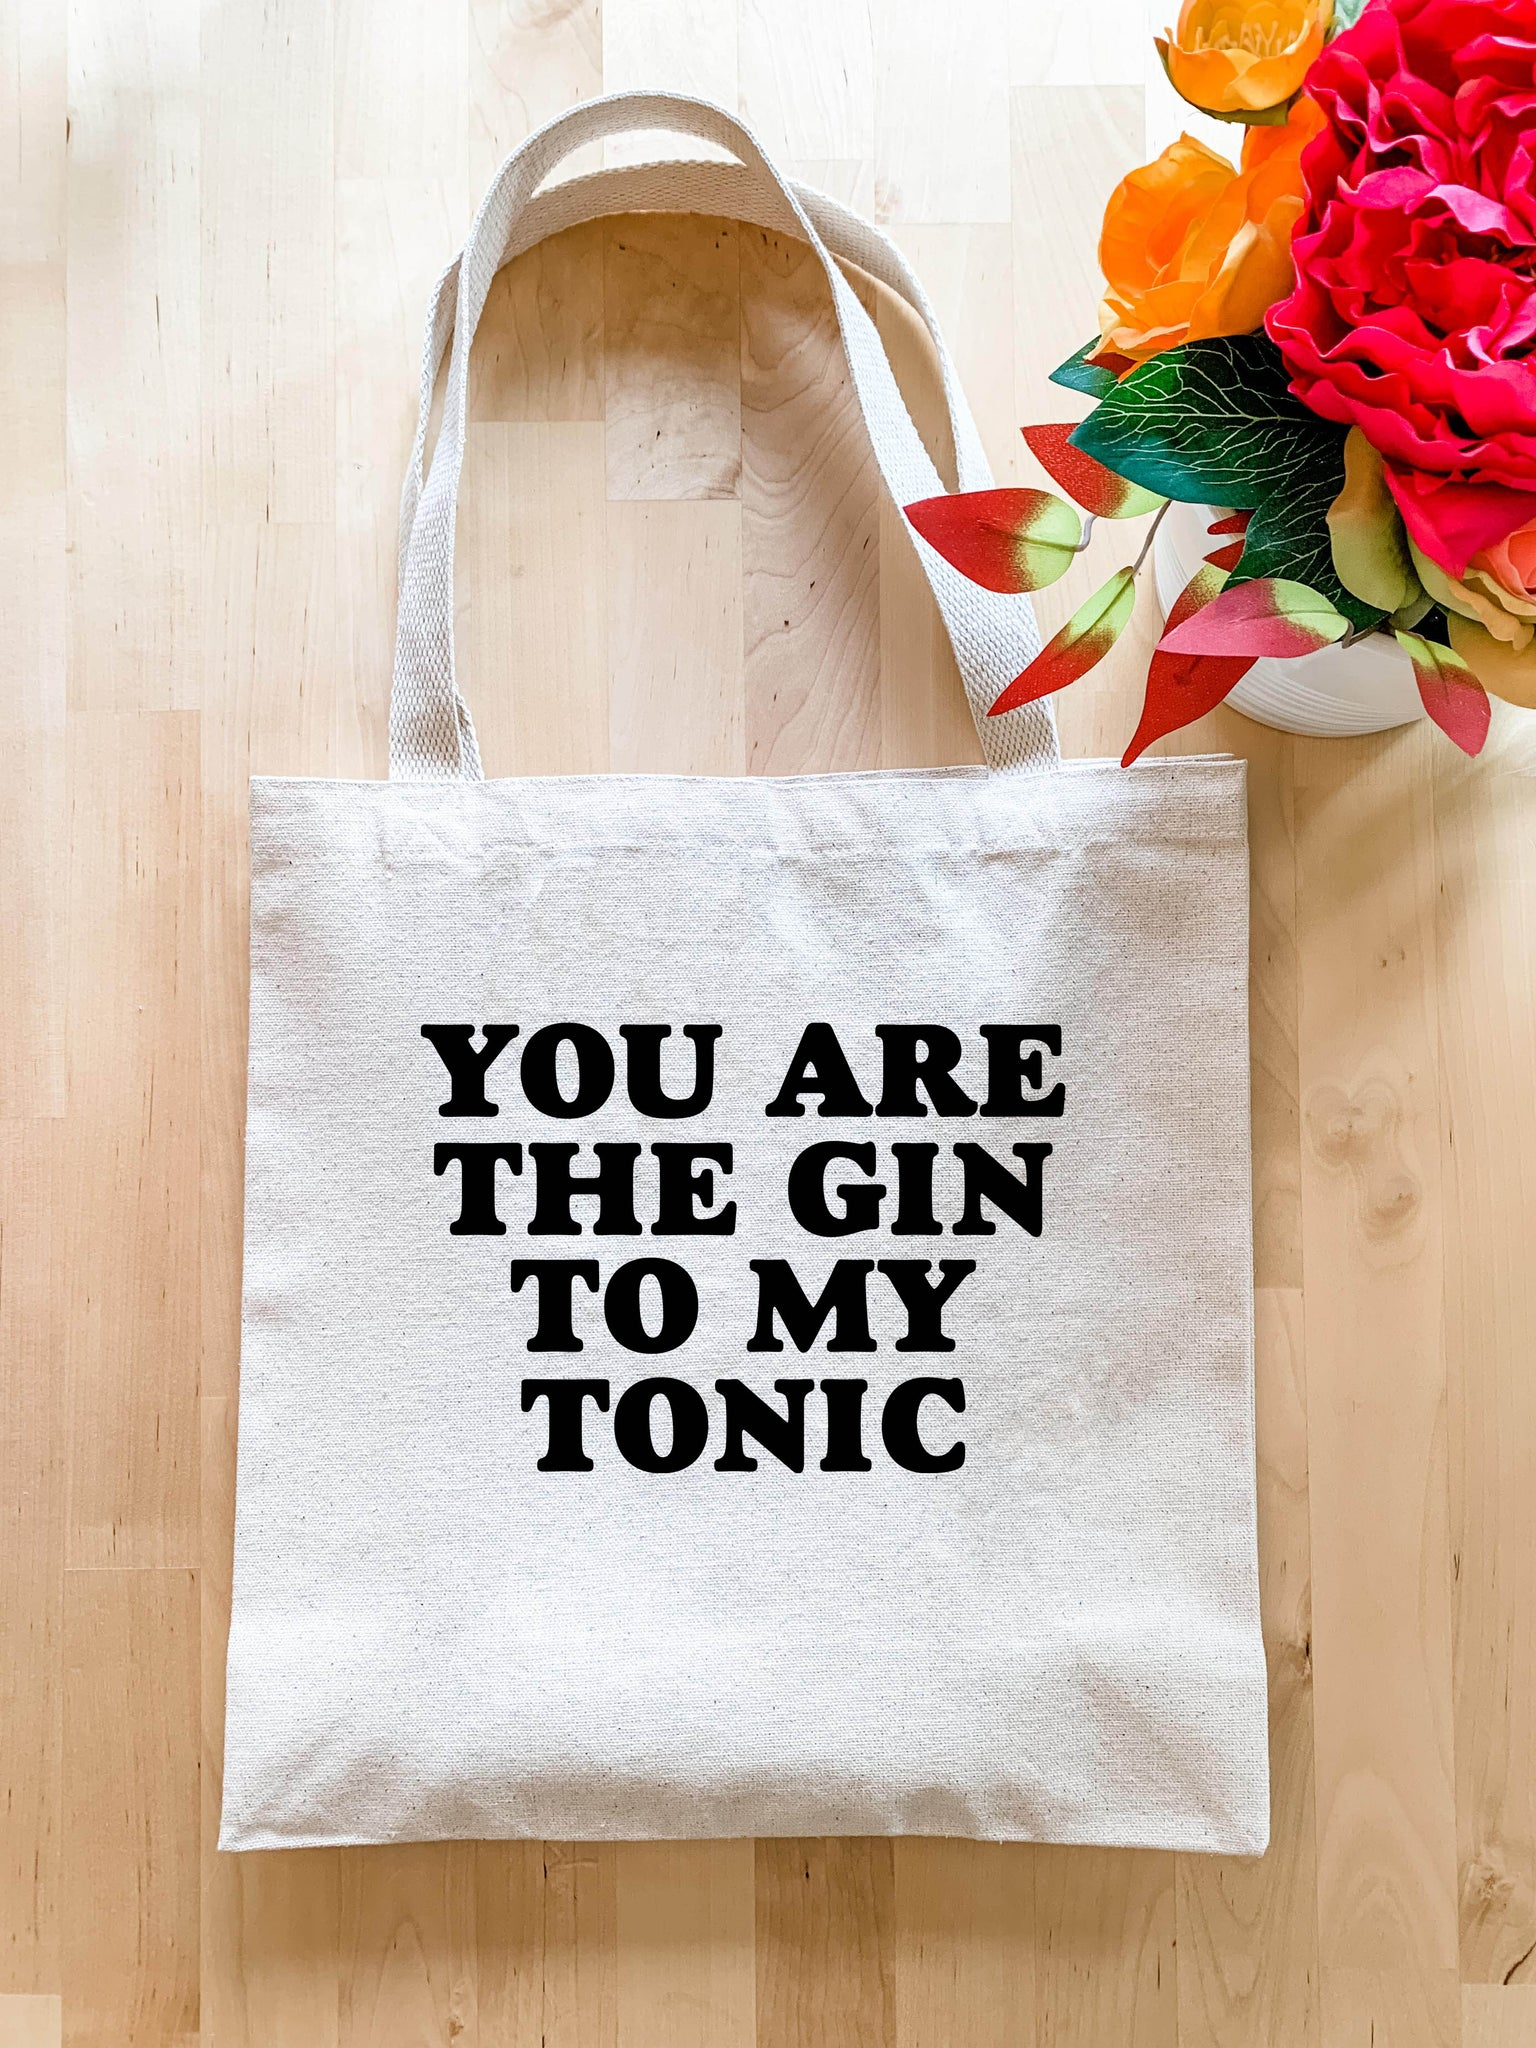 You are the Gin to my Tonic - Tote Bag - MoonlightMakers